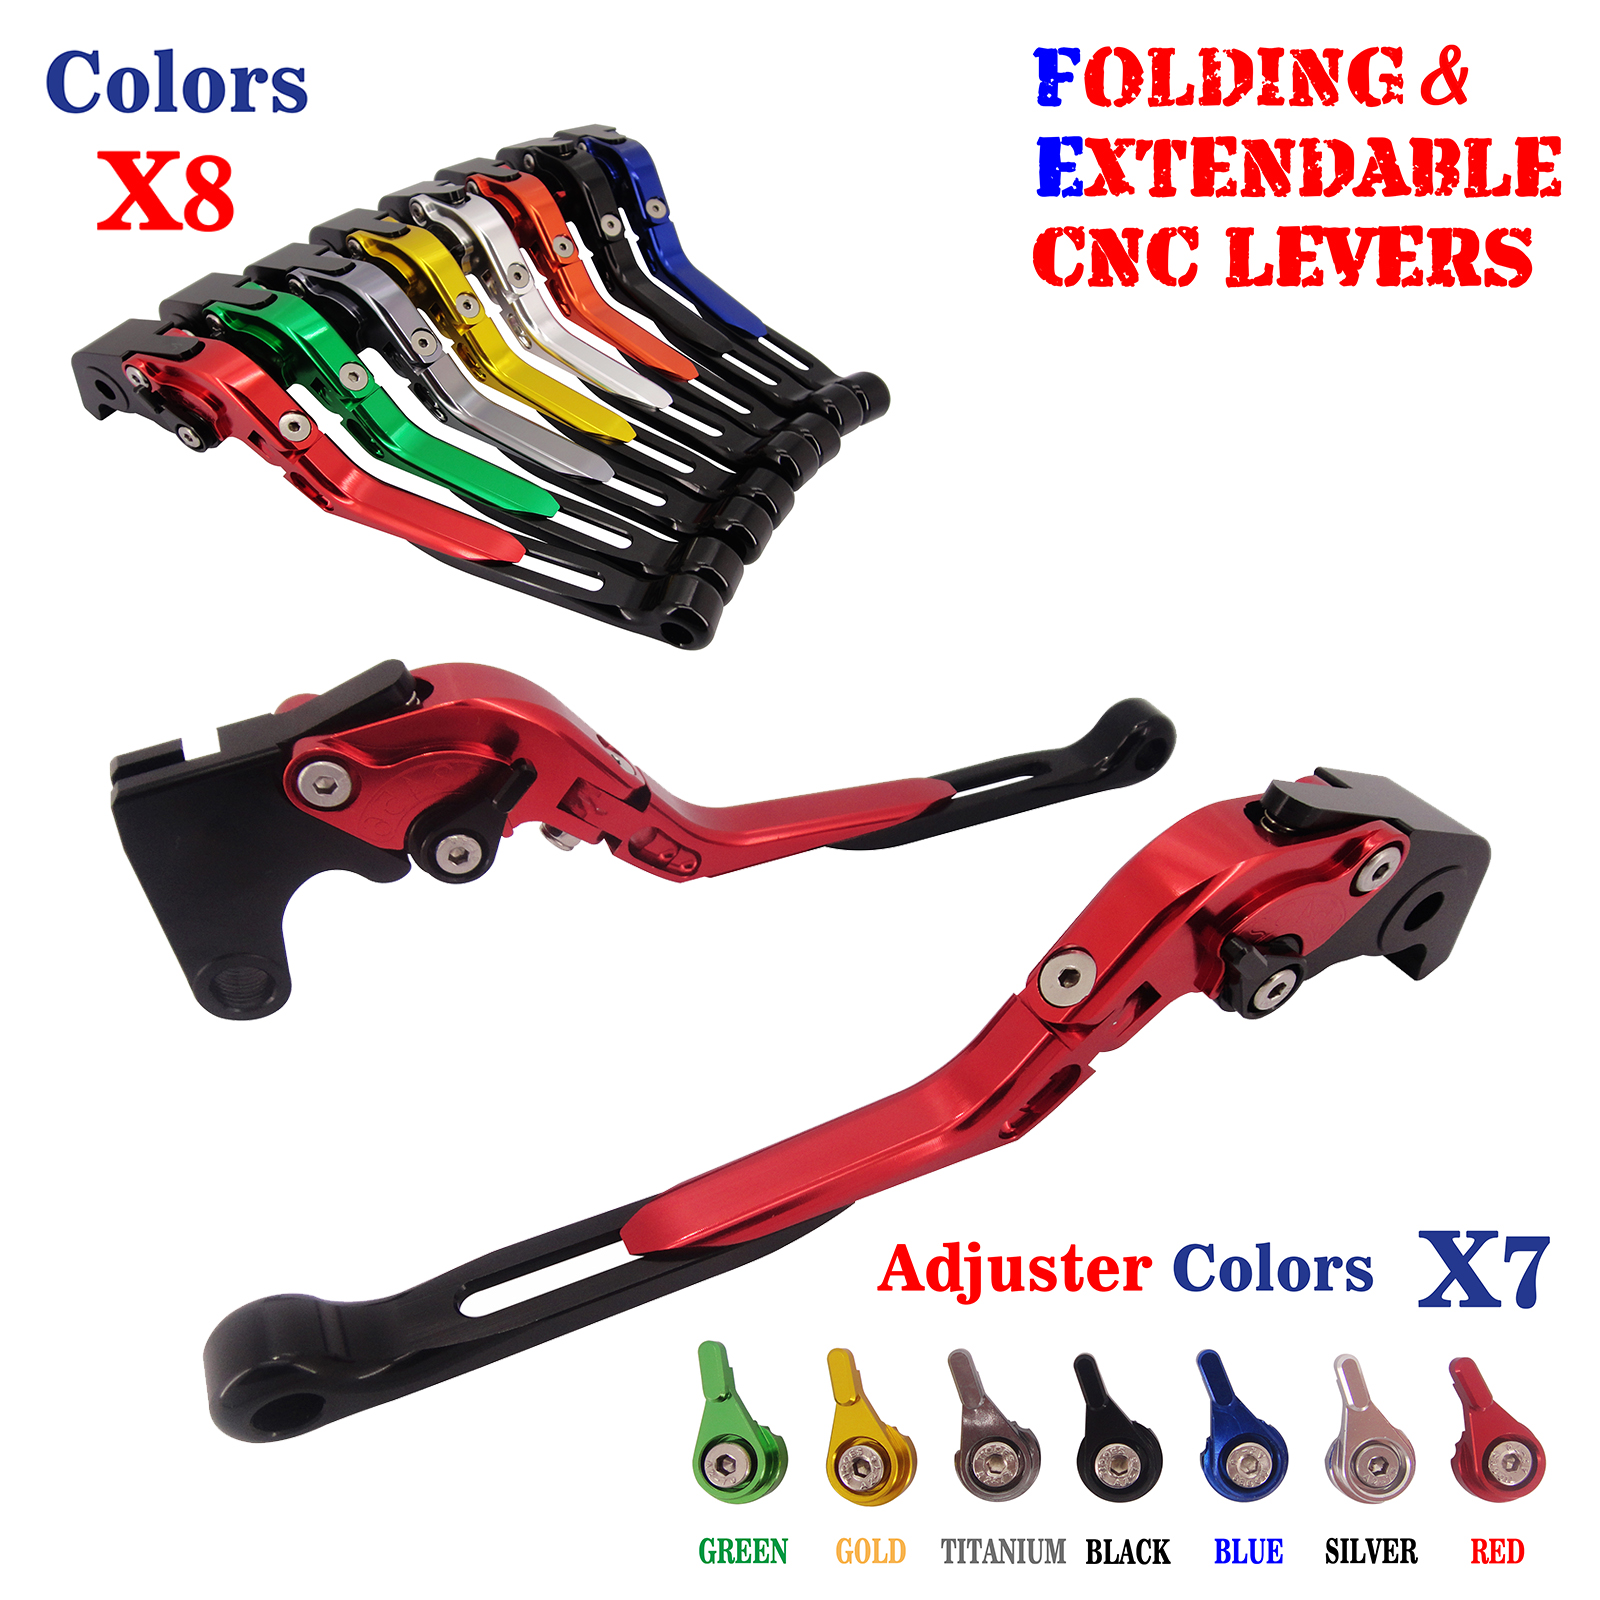 Adjustable Folding Extendable Brake Clutch Levers For Ducati Monster 400 695 696 796 620/620 MTS Monster S2R 800 2005-2007 for ducati monster s2r 800 2005 2006 2007 short clutch brake levers cnc adjustable 10 colors motorbike accessories